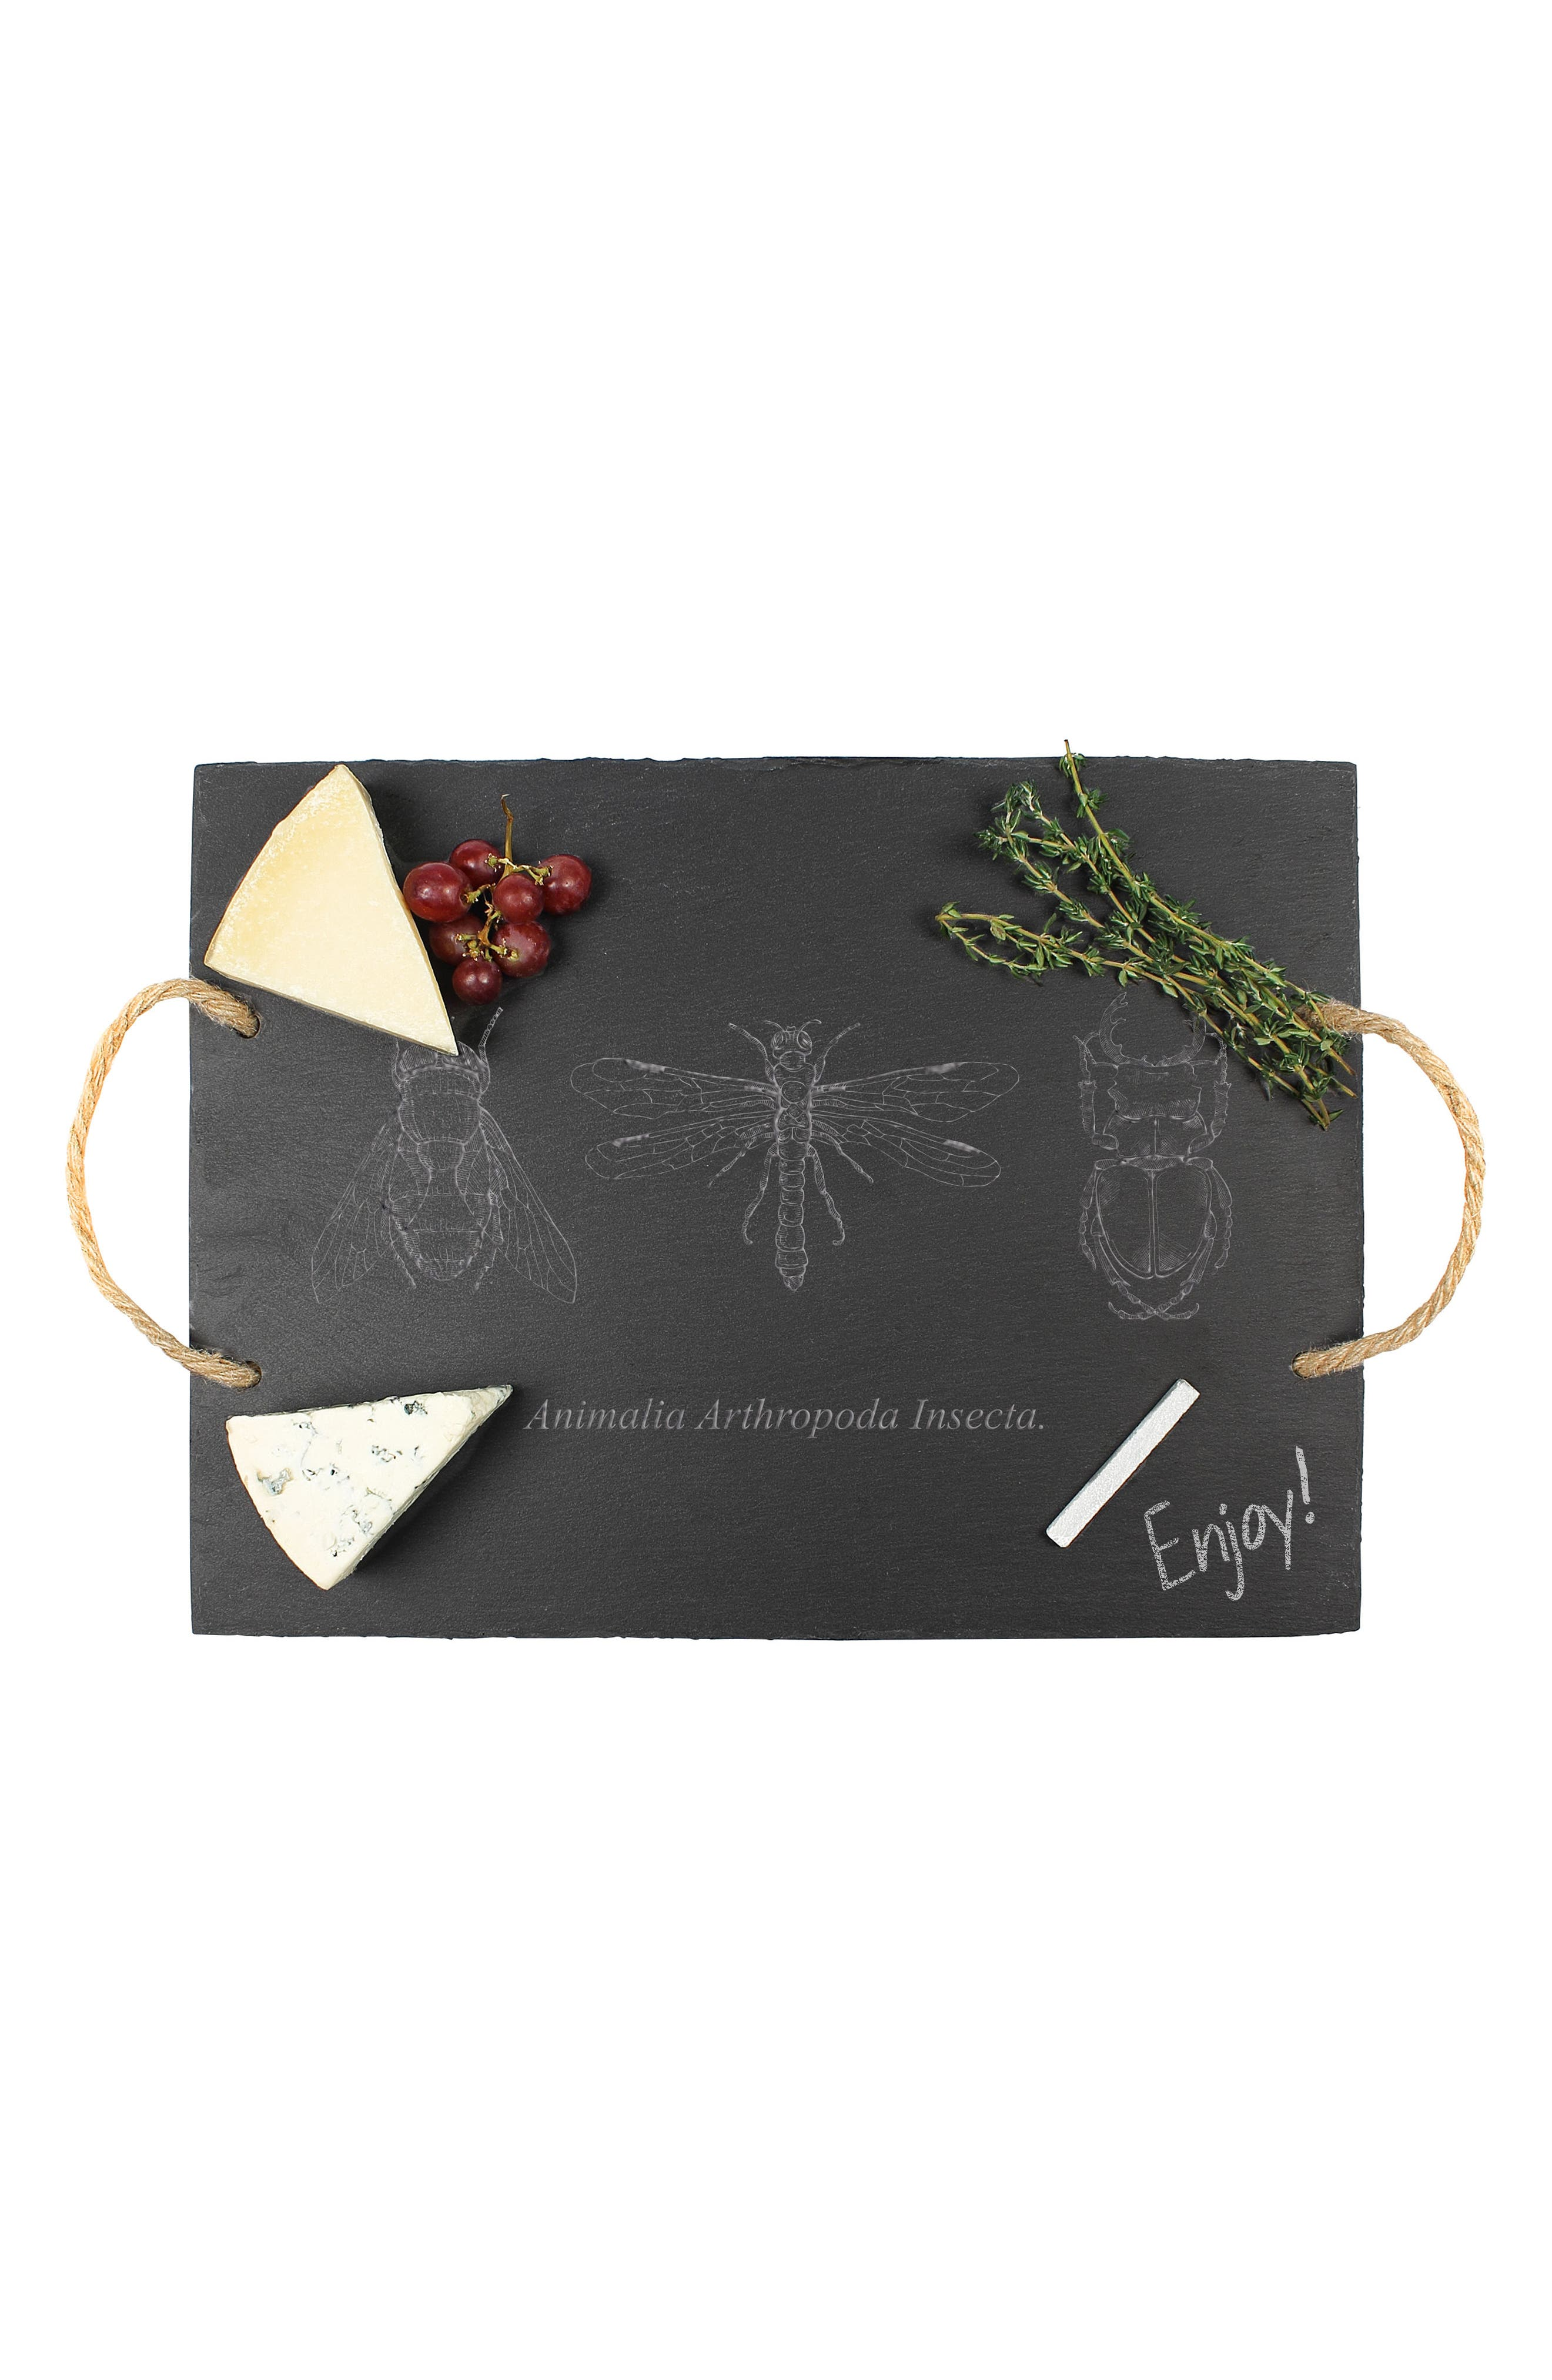 Insect Slate Tray,                             Alternate thumbnail 2, color,                             001